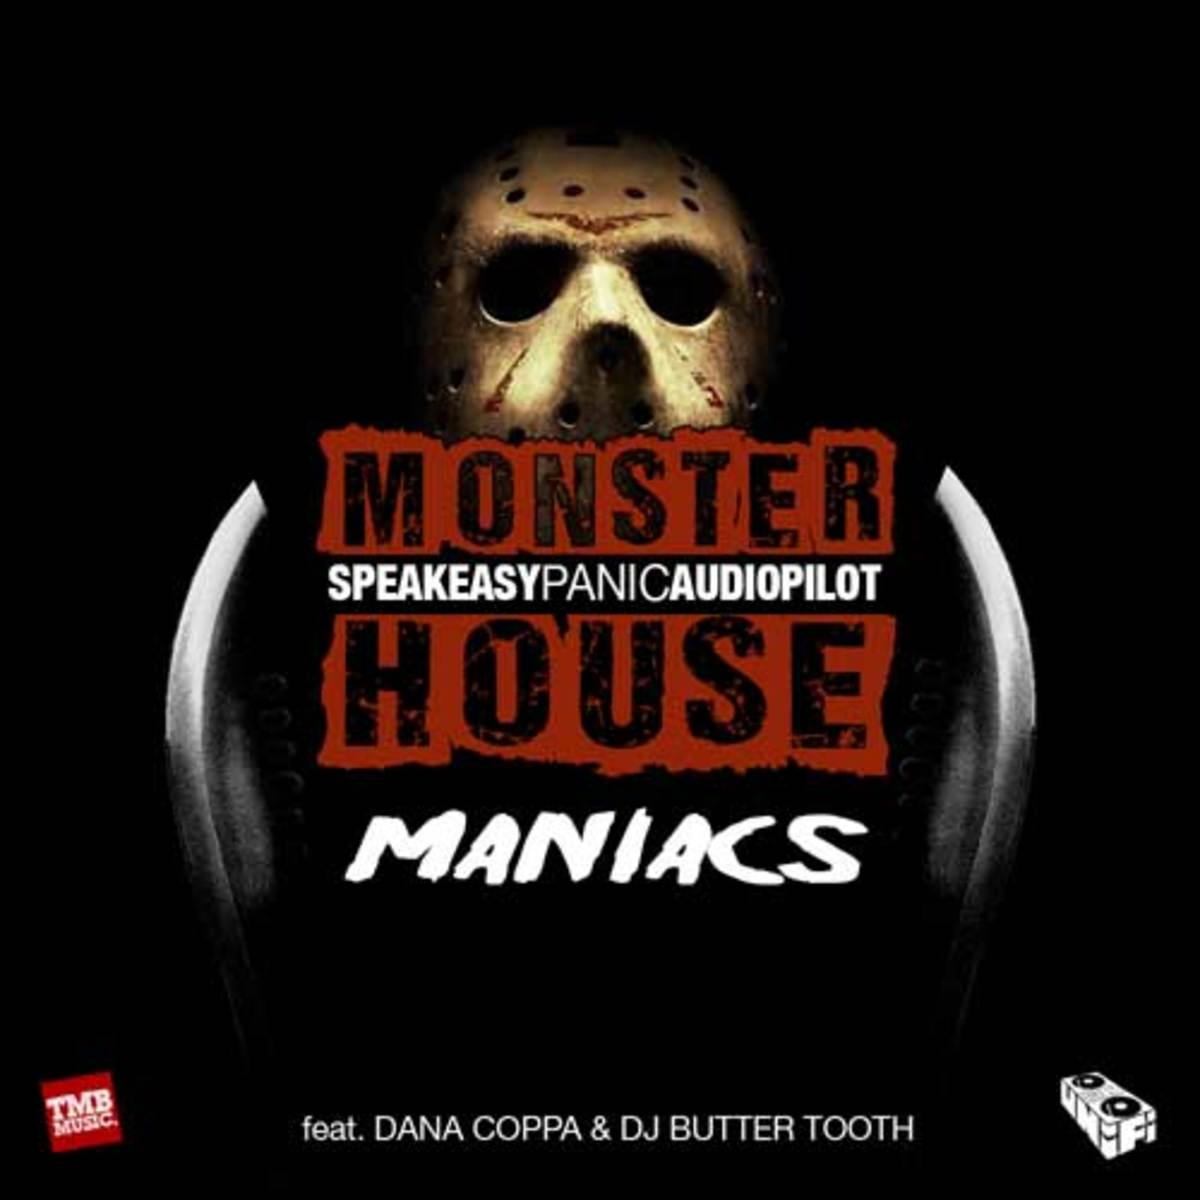 monsterhouse-maniacs.jpg